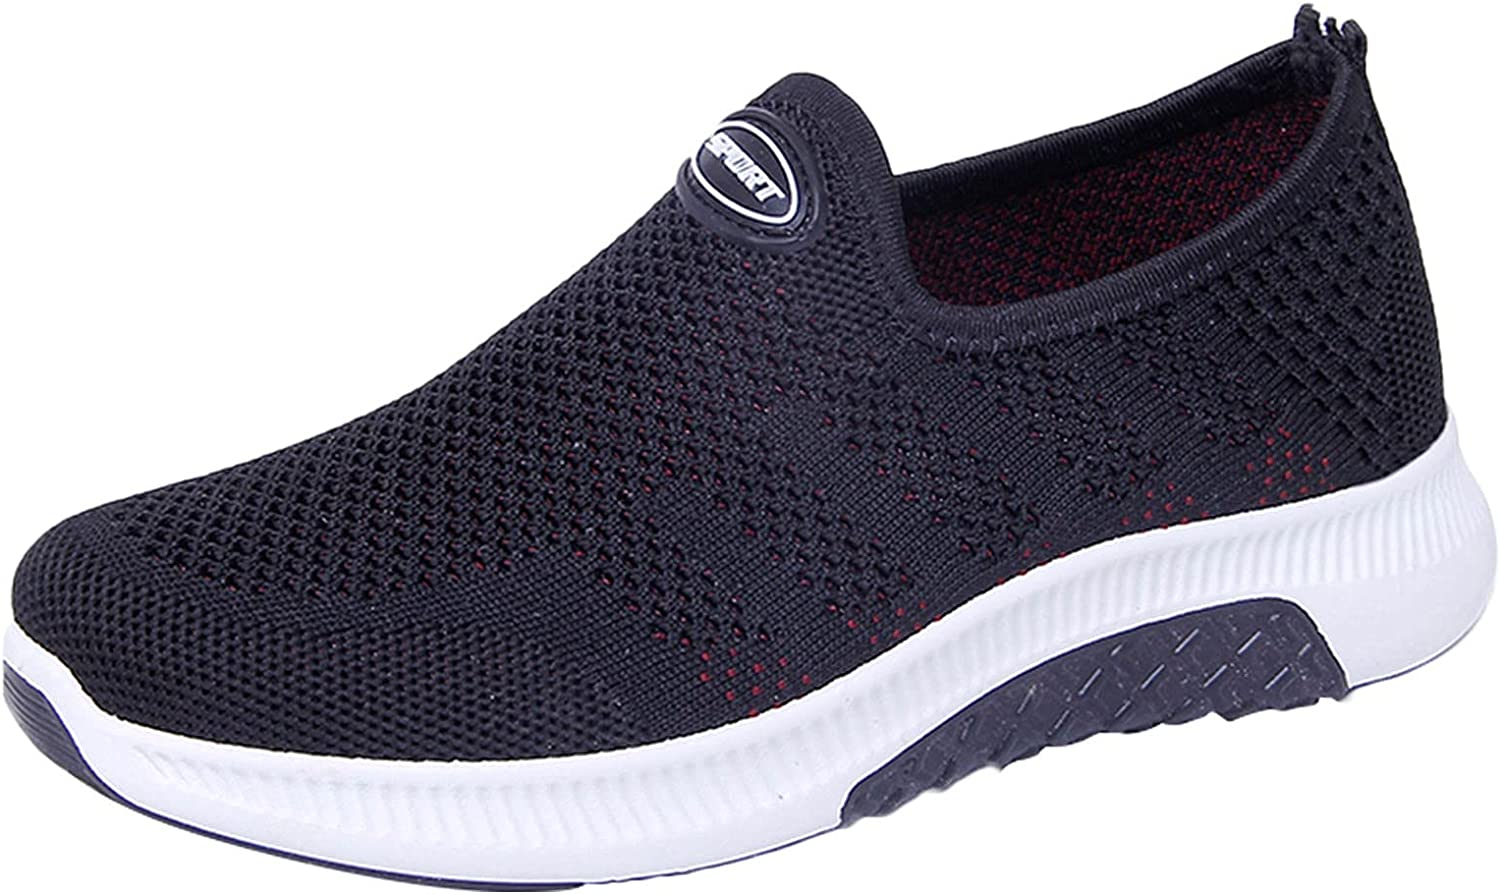 Lightweight Sneakers Recommendation for Women Breathable Gym Shoe price Slip-on Shoes